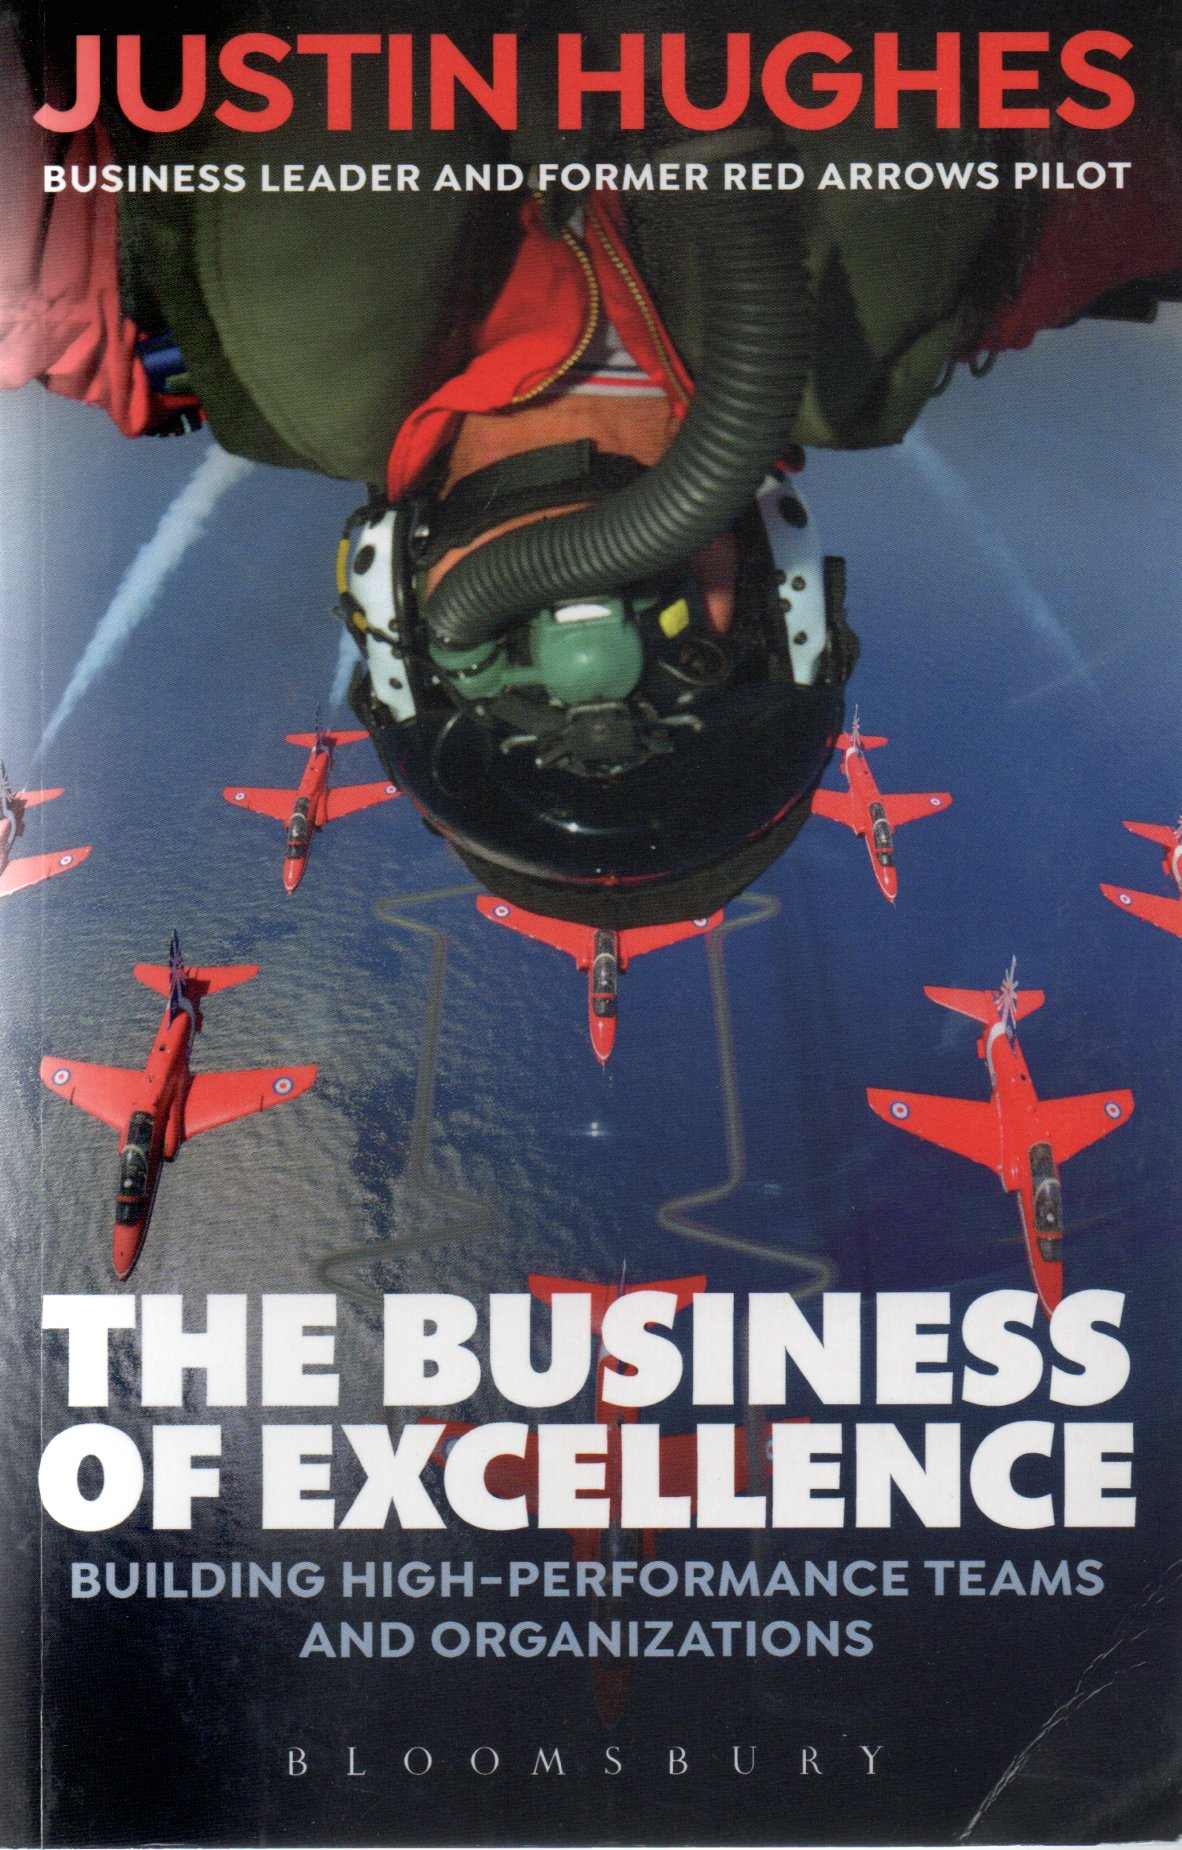 The business of excellence / Justin Hughes